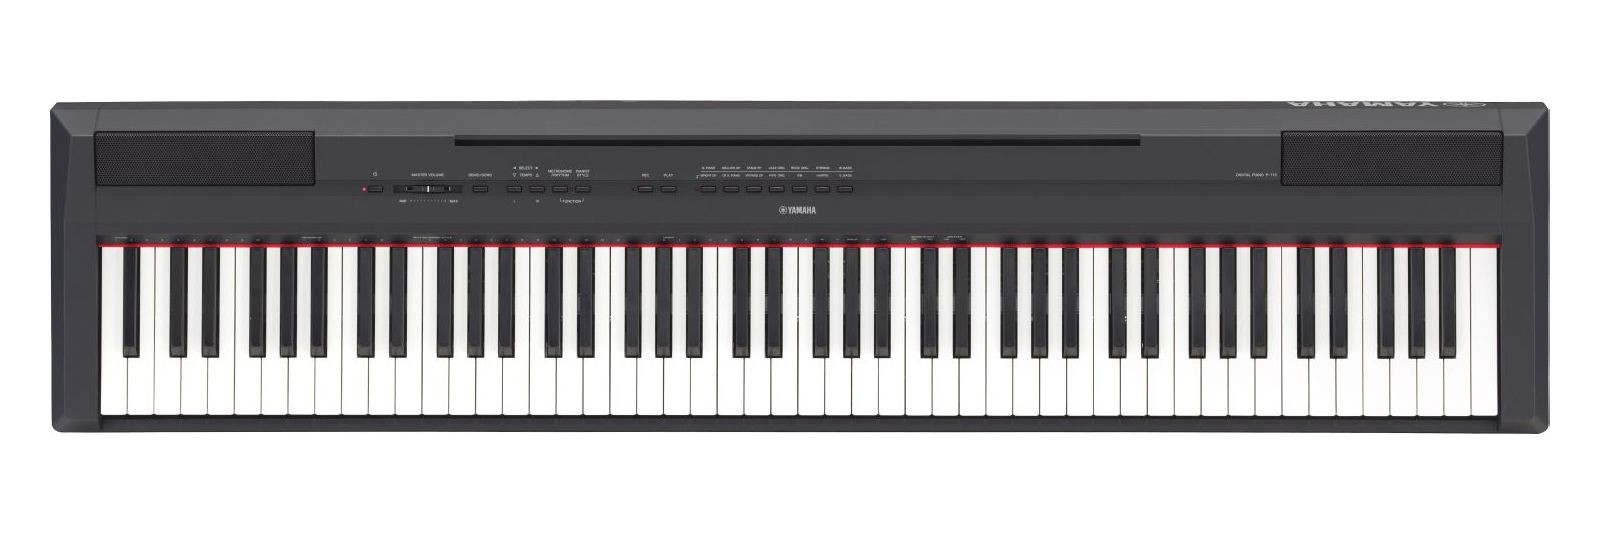 Jammin' With You! Music Store Yamaha keyboards keys piano P95